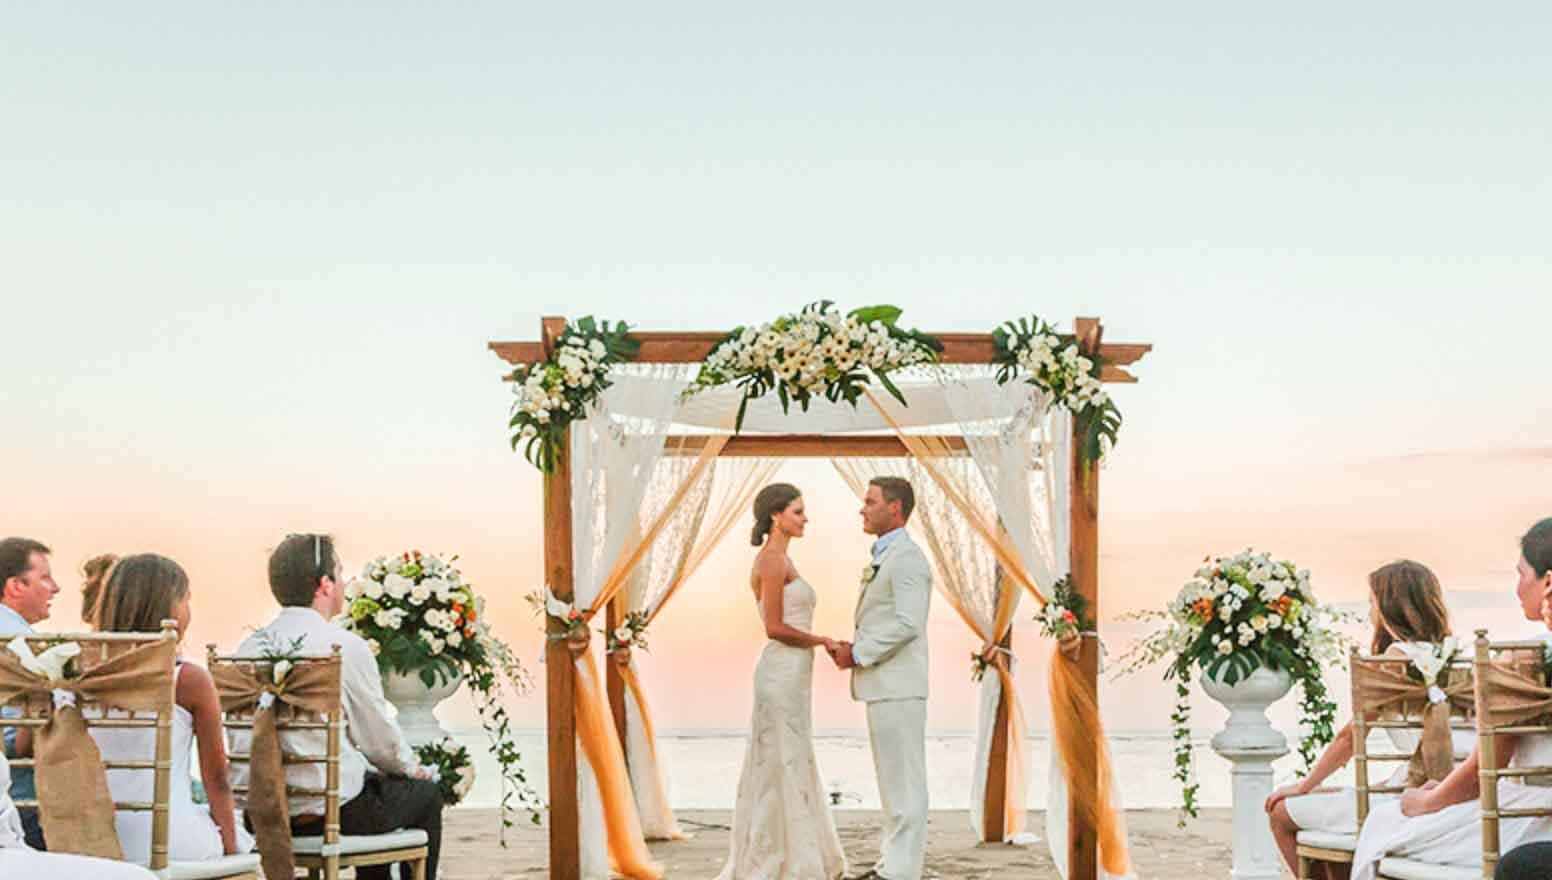 Ma Joly Sunset Beach Wedding Venue (30 - 100 Pax) Inclusive of Photograph & Videography + Makeup & H